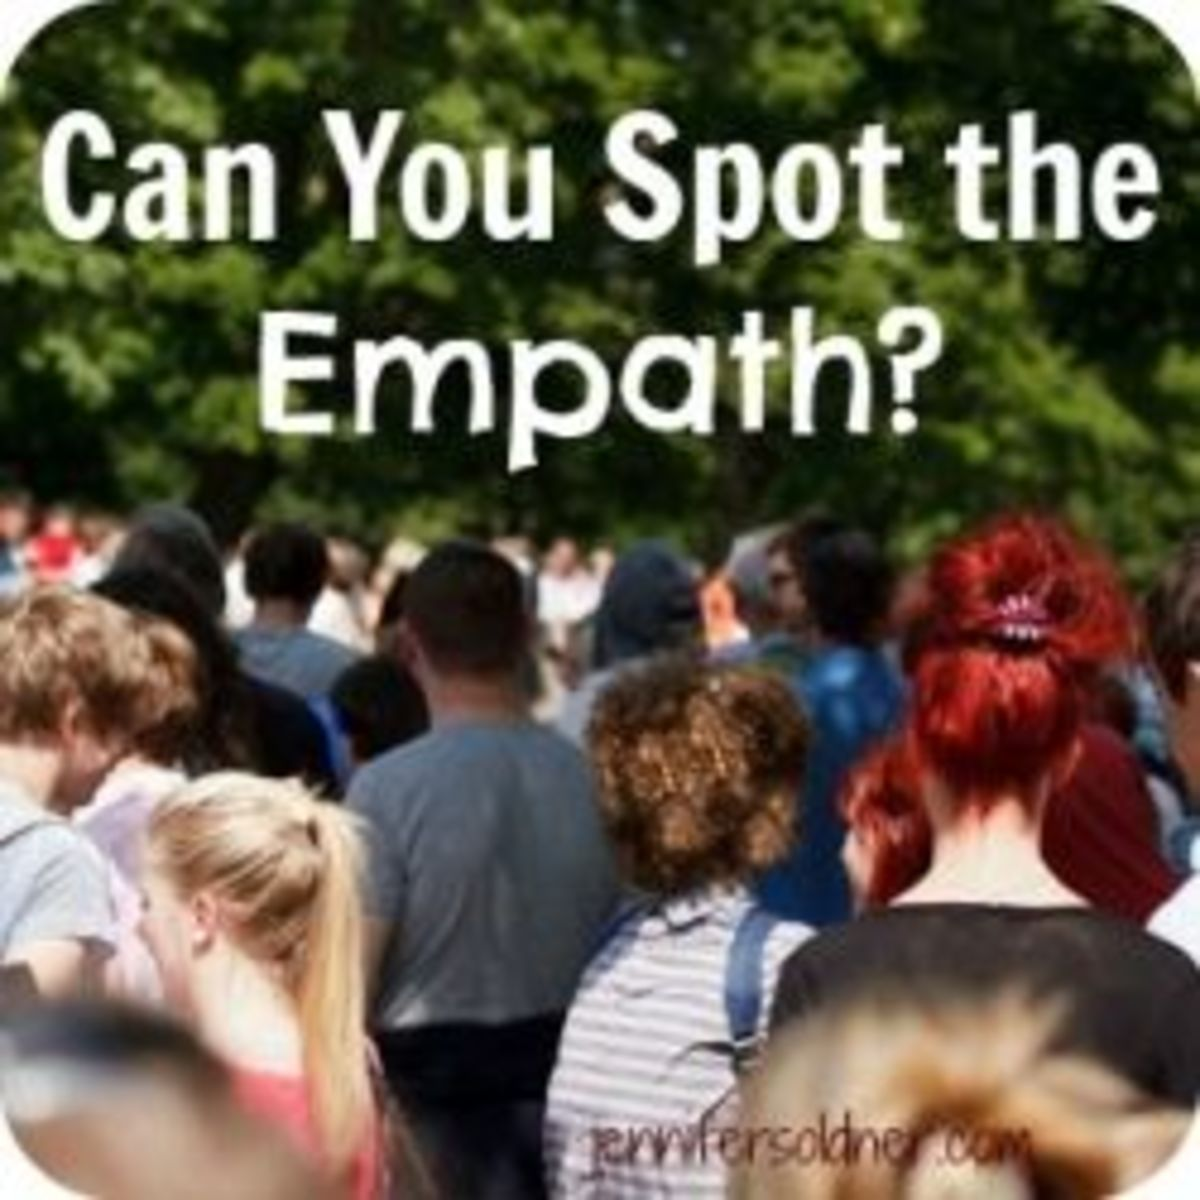 Can You Spot the Empath?